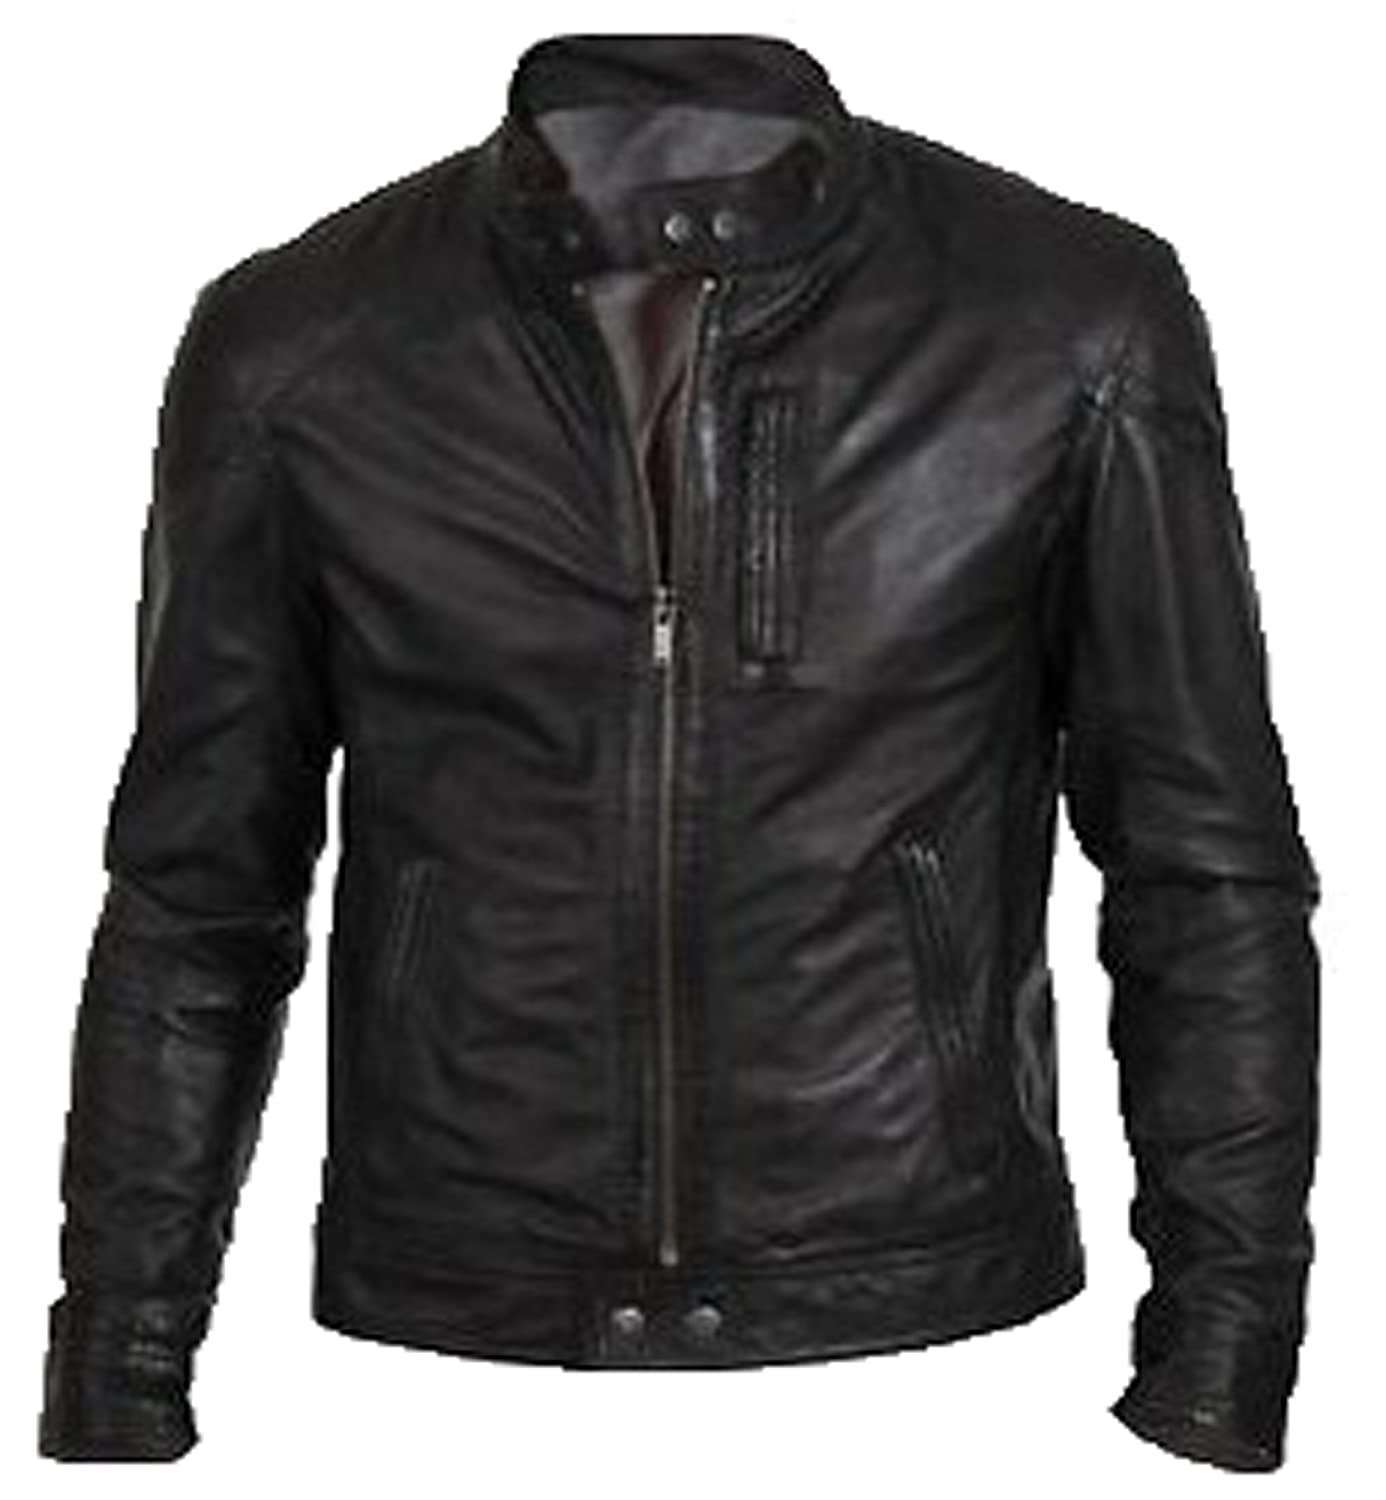 Bomber Rider Slim Fit Casual Stylish Black Real Leather Jacket